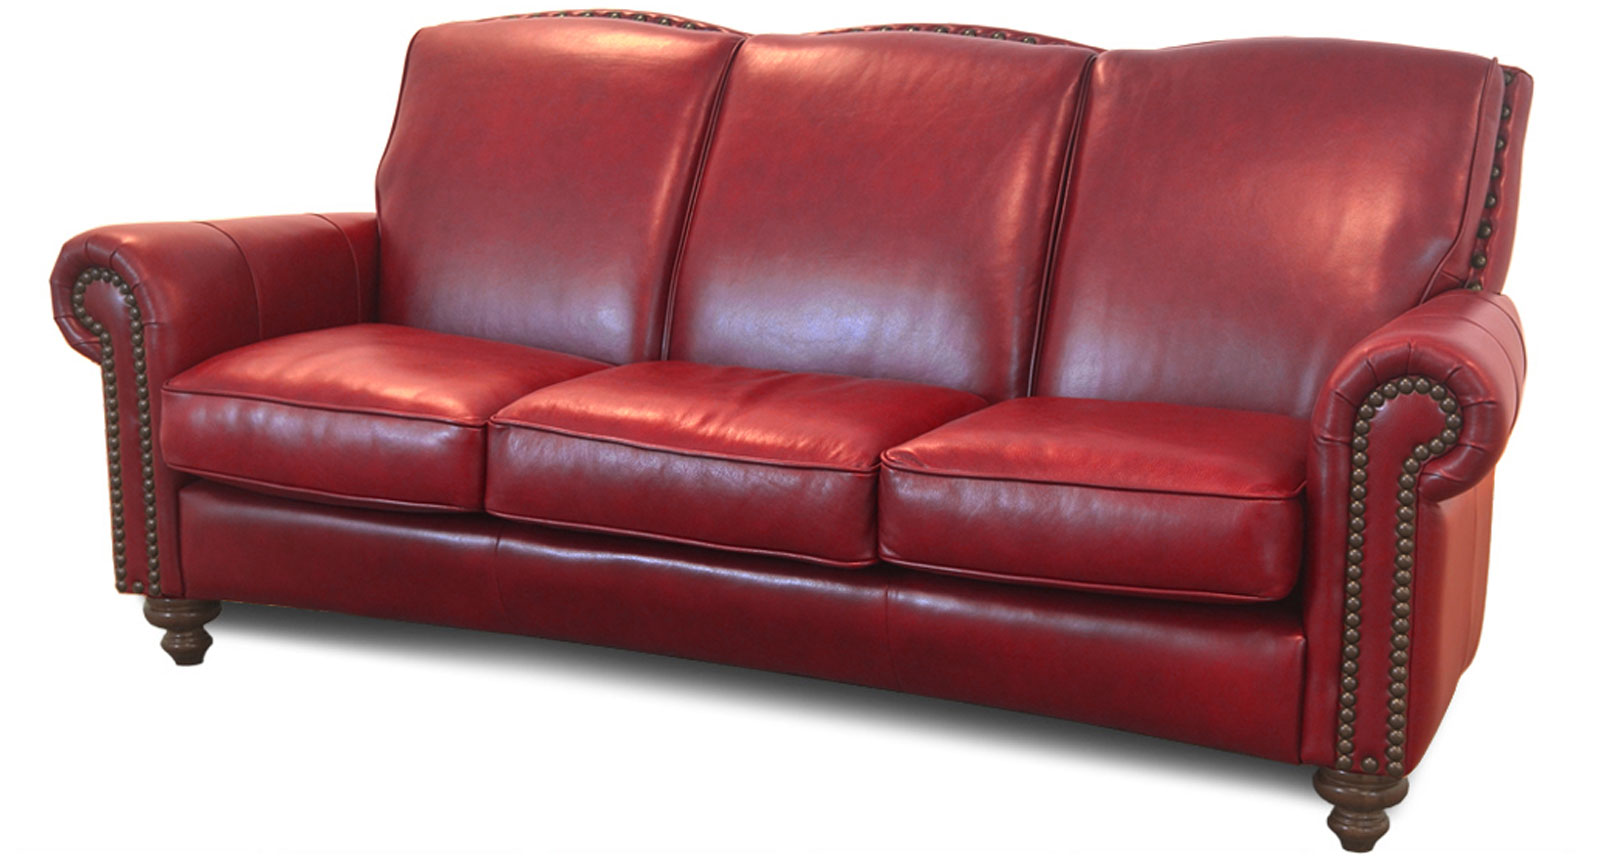 Jordicia The Leather Sofa Company